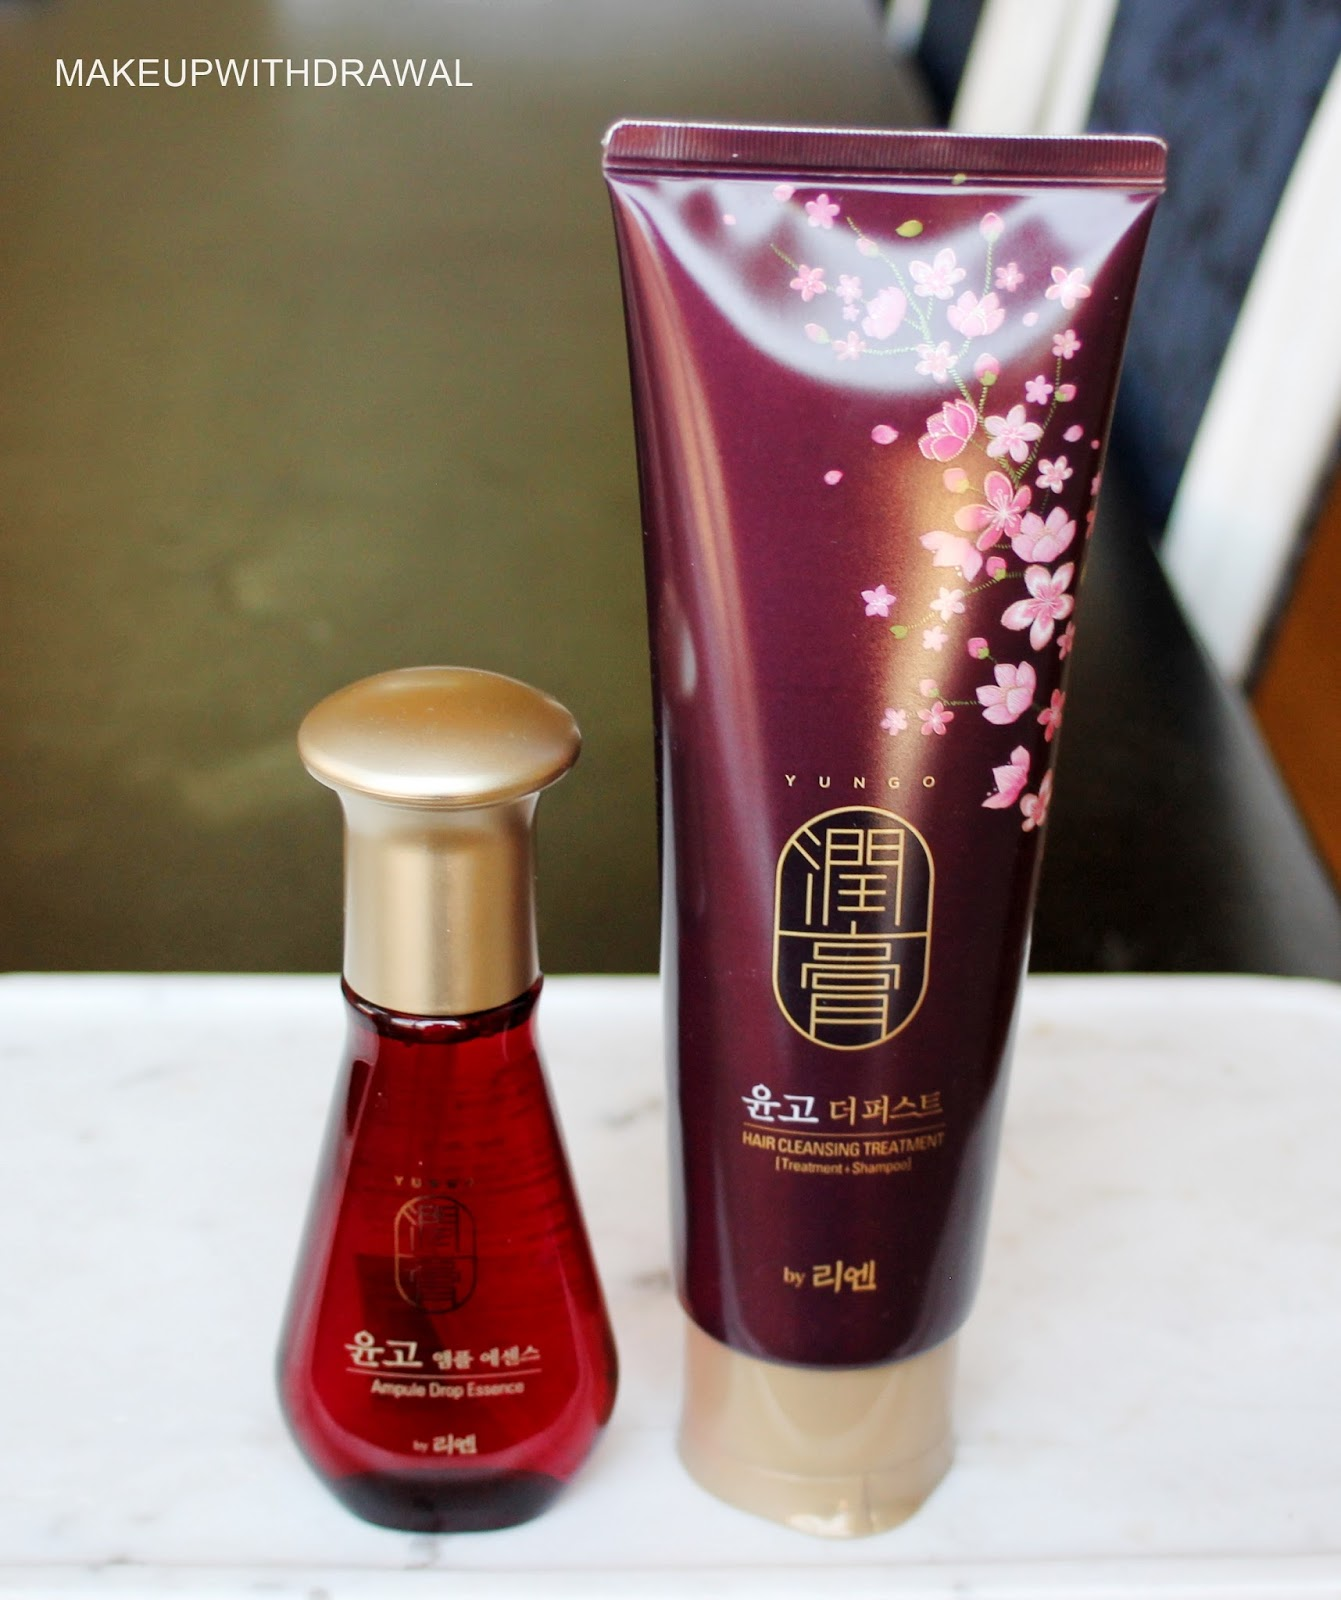 Yungo By Reen The First Hair Cleansing Treatment Ampule Drop Pureheals Galactomyces 90 Ampoule 30ml When We Met Up In Shanghai I Had Chance To Try This Product For Myself And Ultimately Ordered As Well